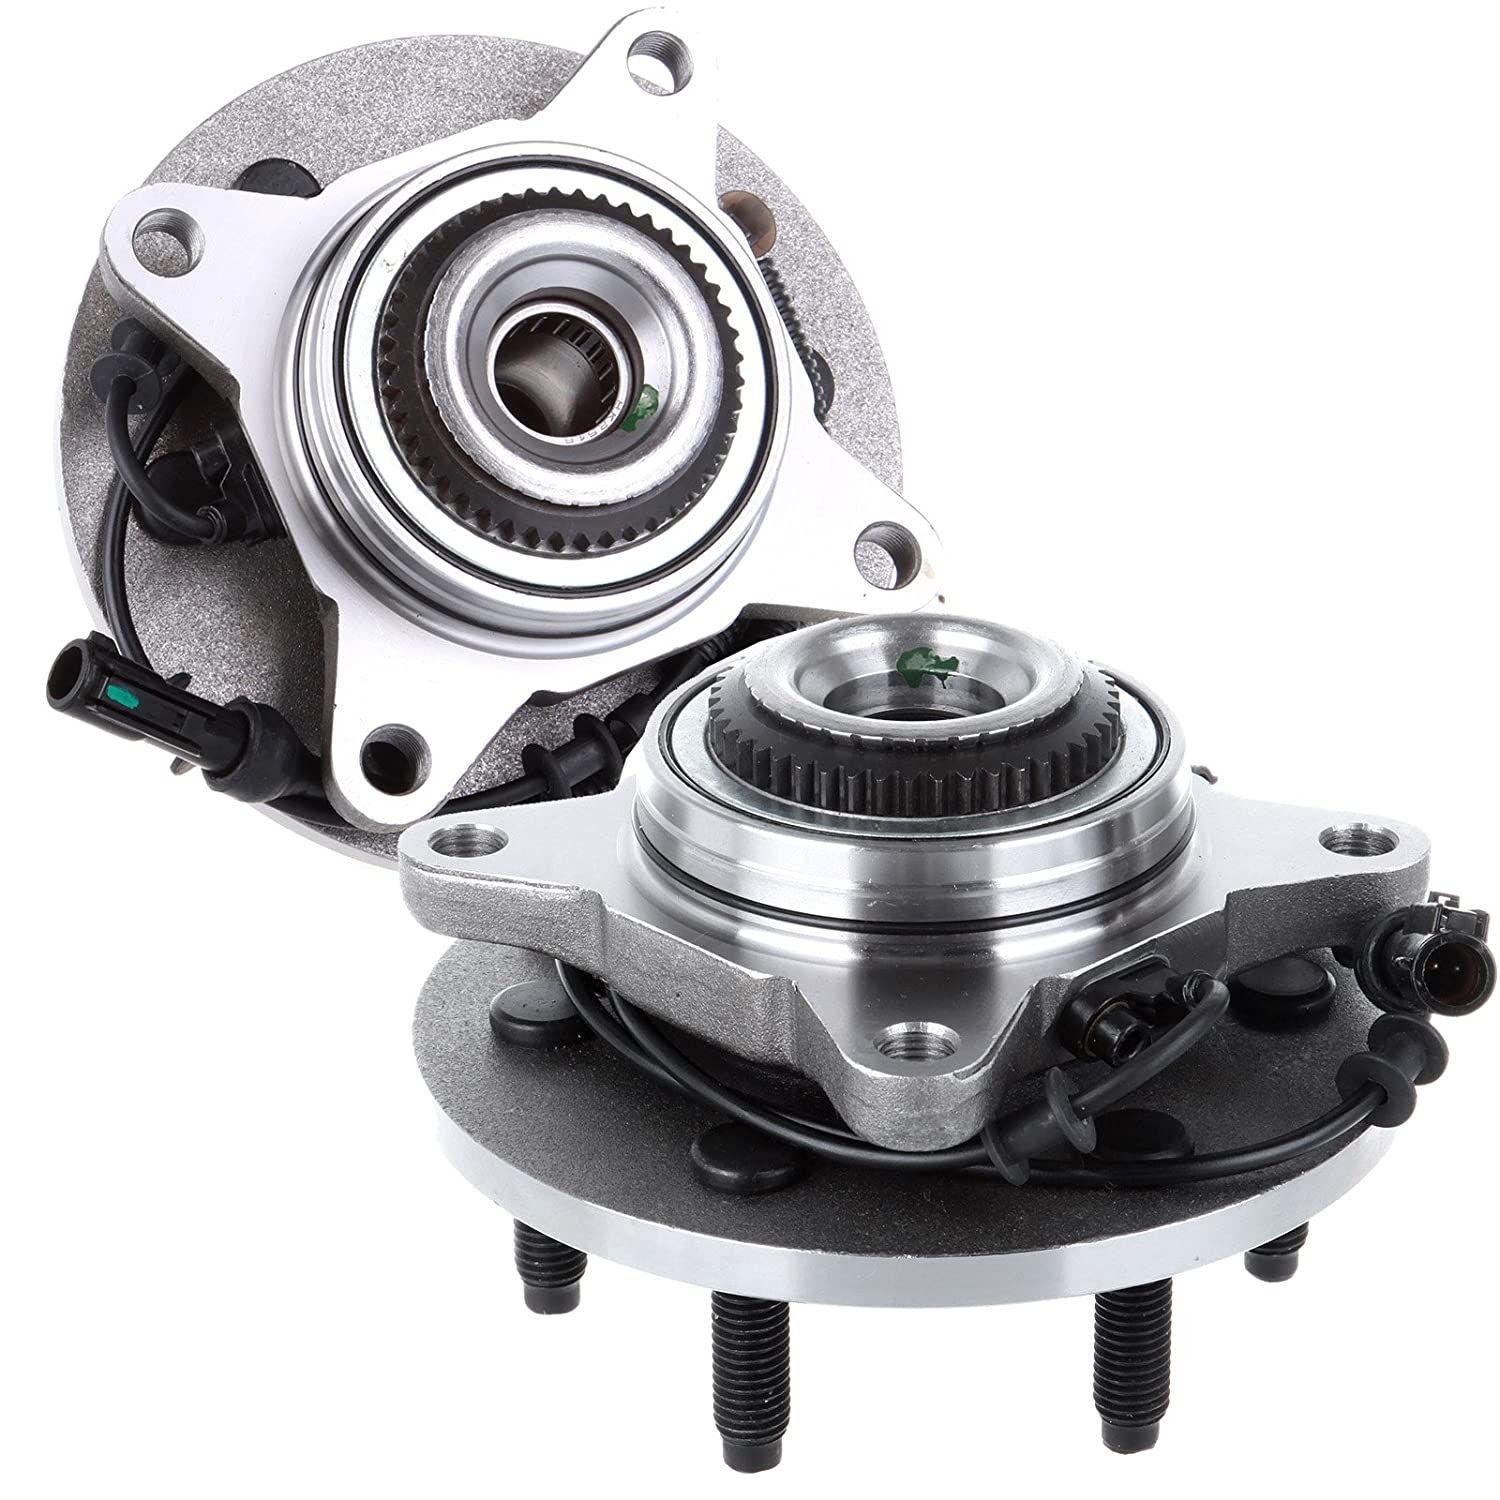 SCITOO Compatible with 2 Front Fits F-150 Expedition ABS 4WD 4x4 Wheel Hub and Bearing Assembly 515079 X 2